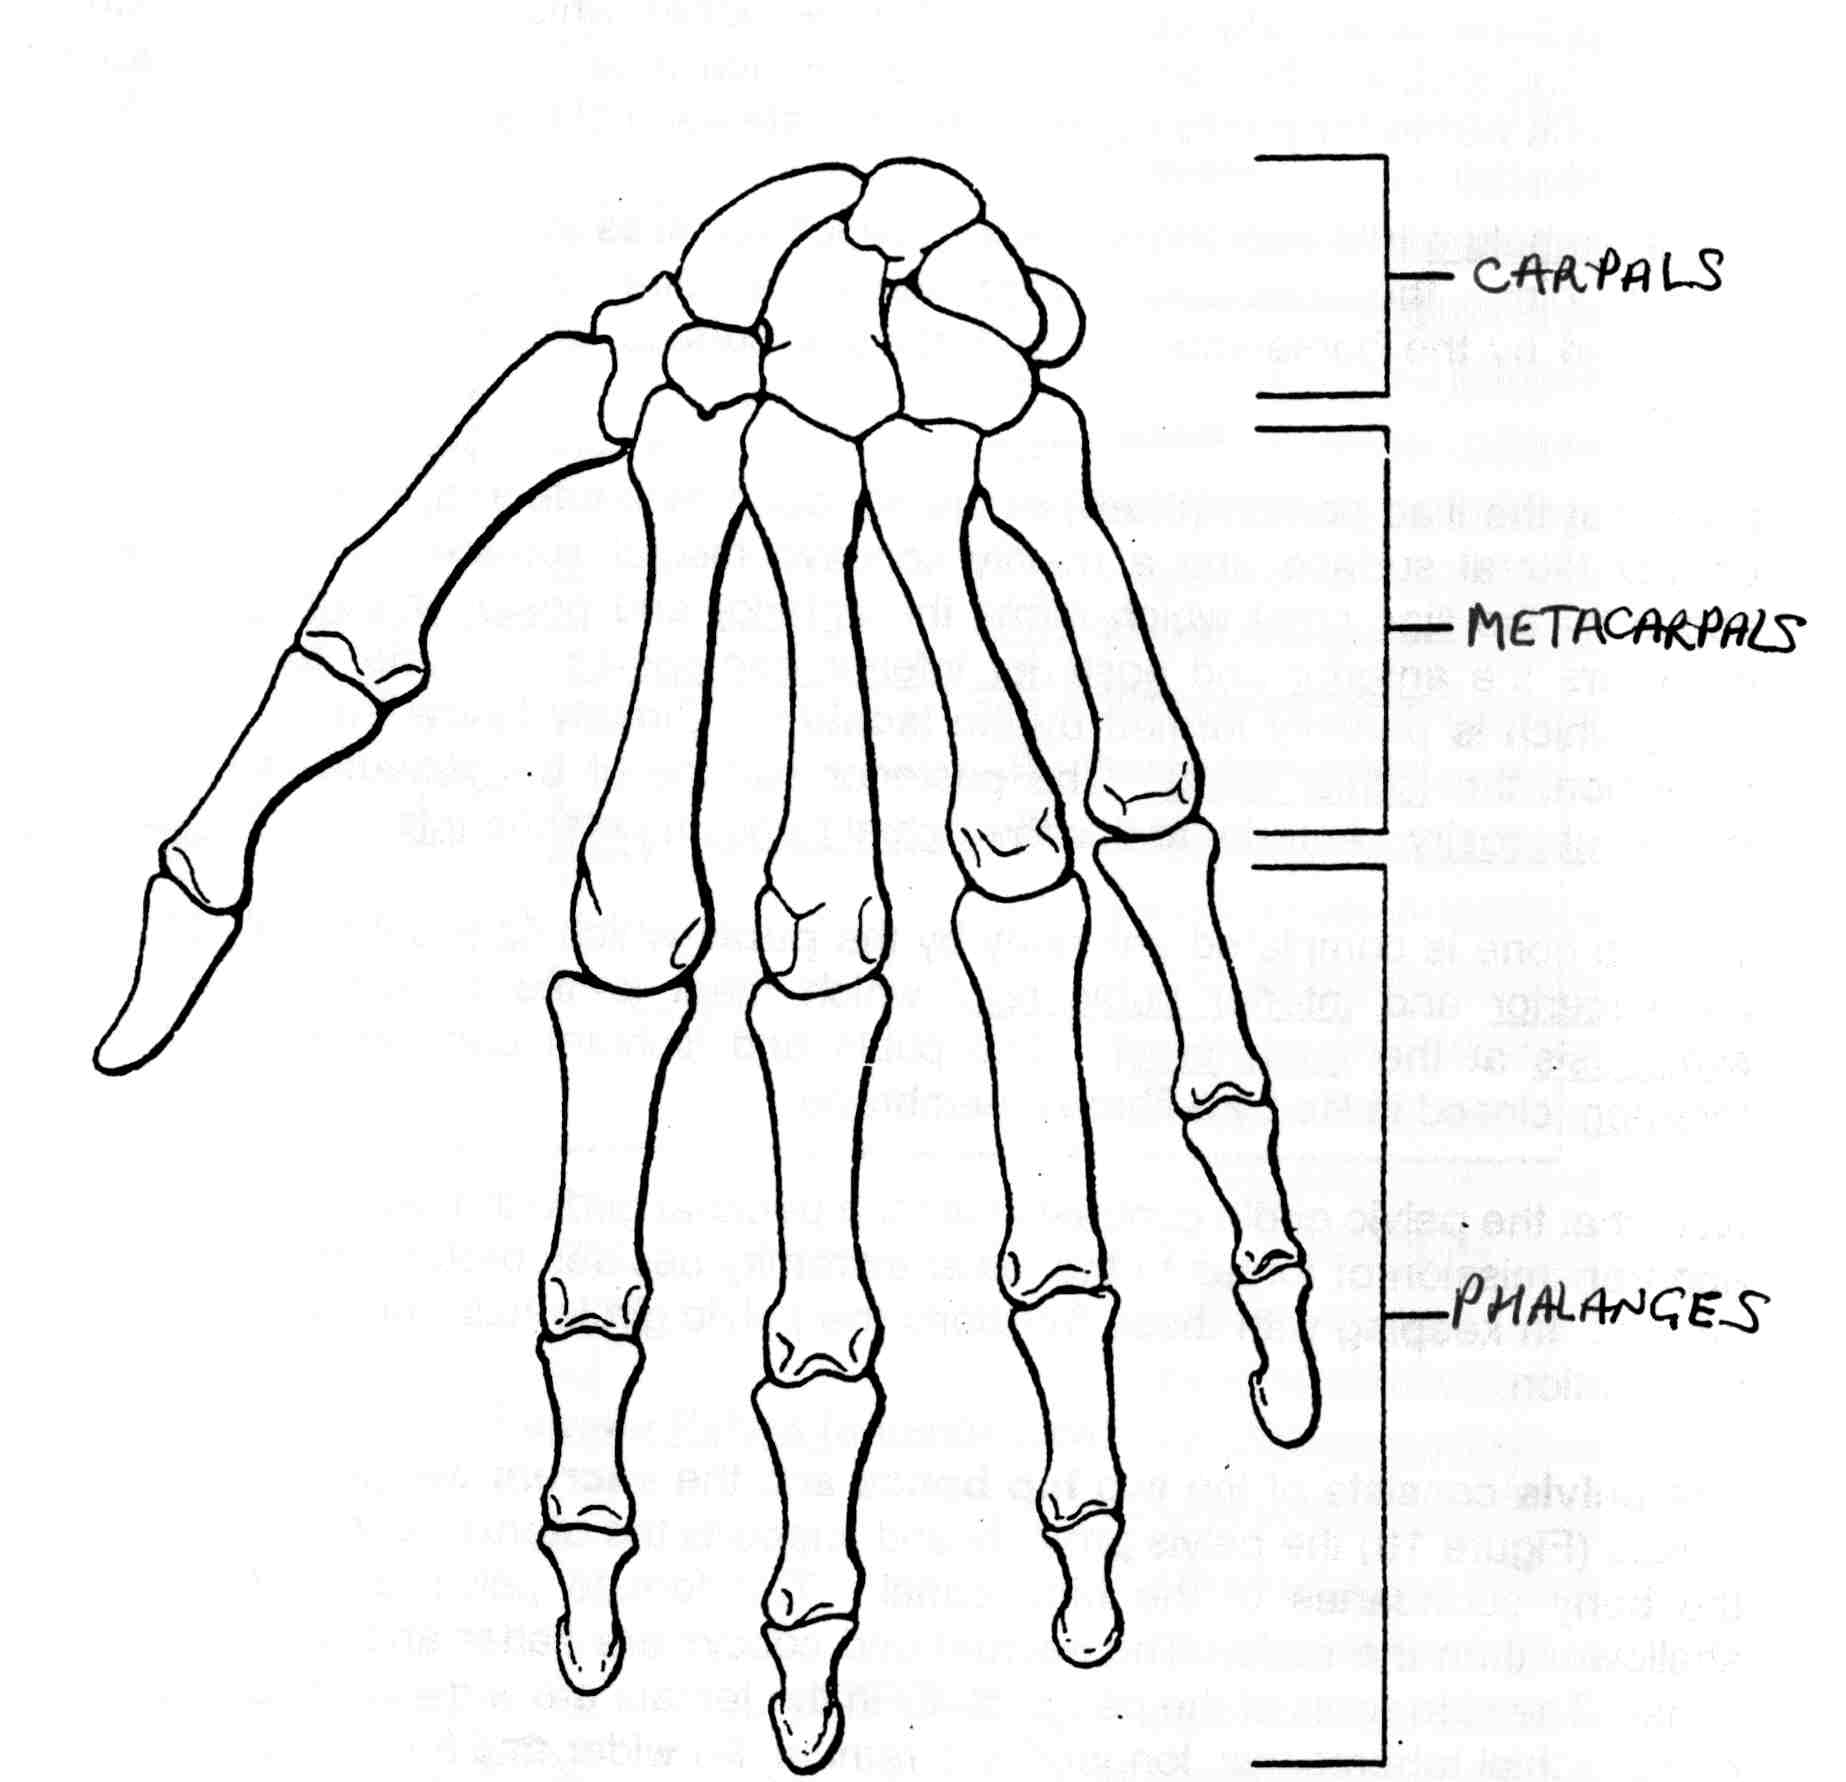 1846x1782 Drawing Of Human Skeleton With Label Skeletal Hand Anatomy Image